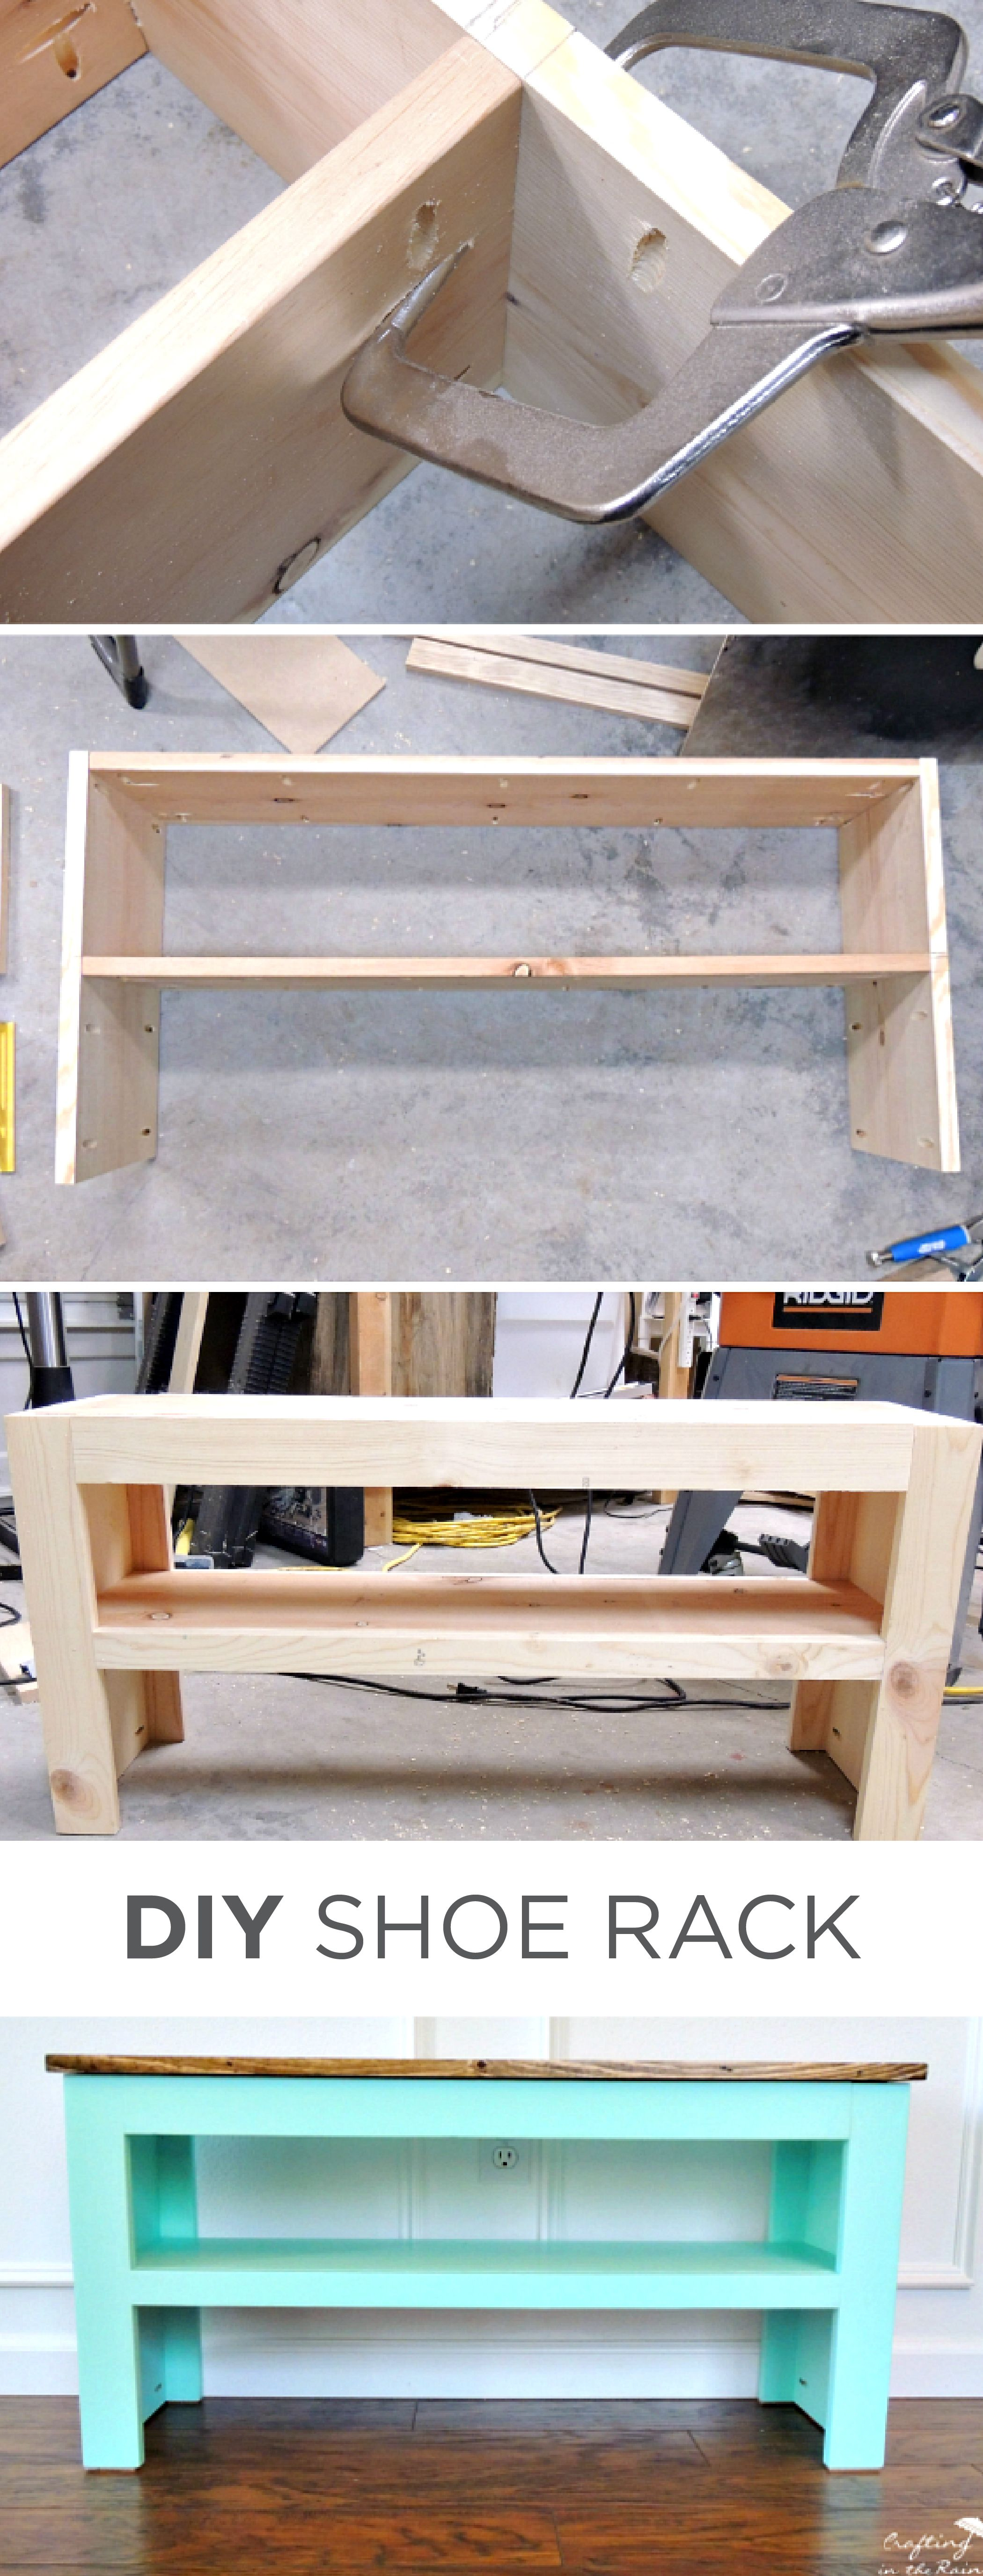 This DIY shoe rack from blogger Crafting